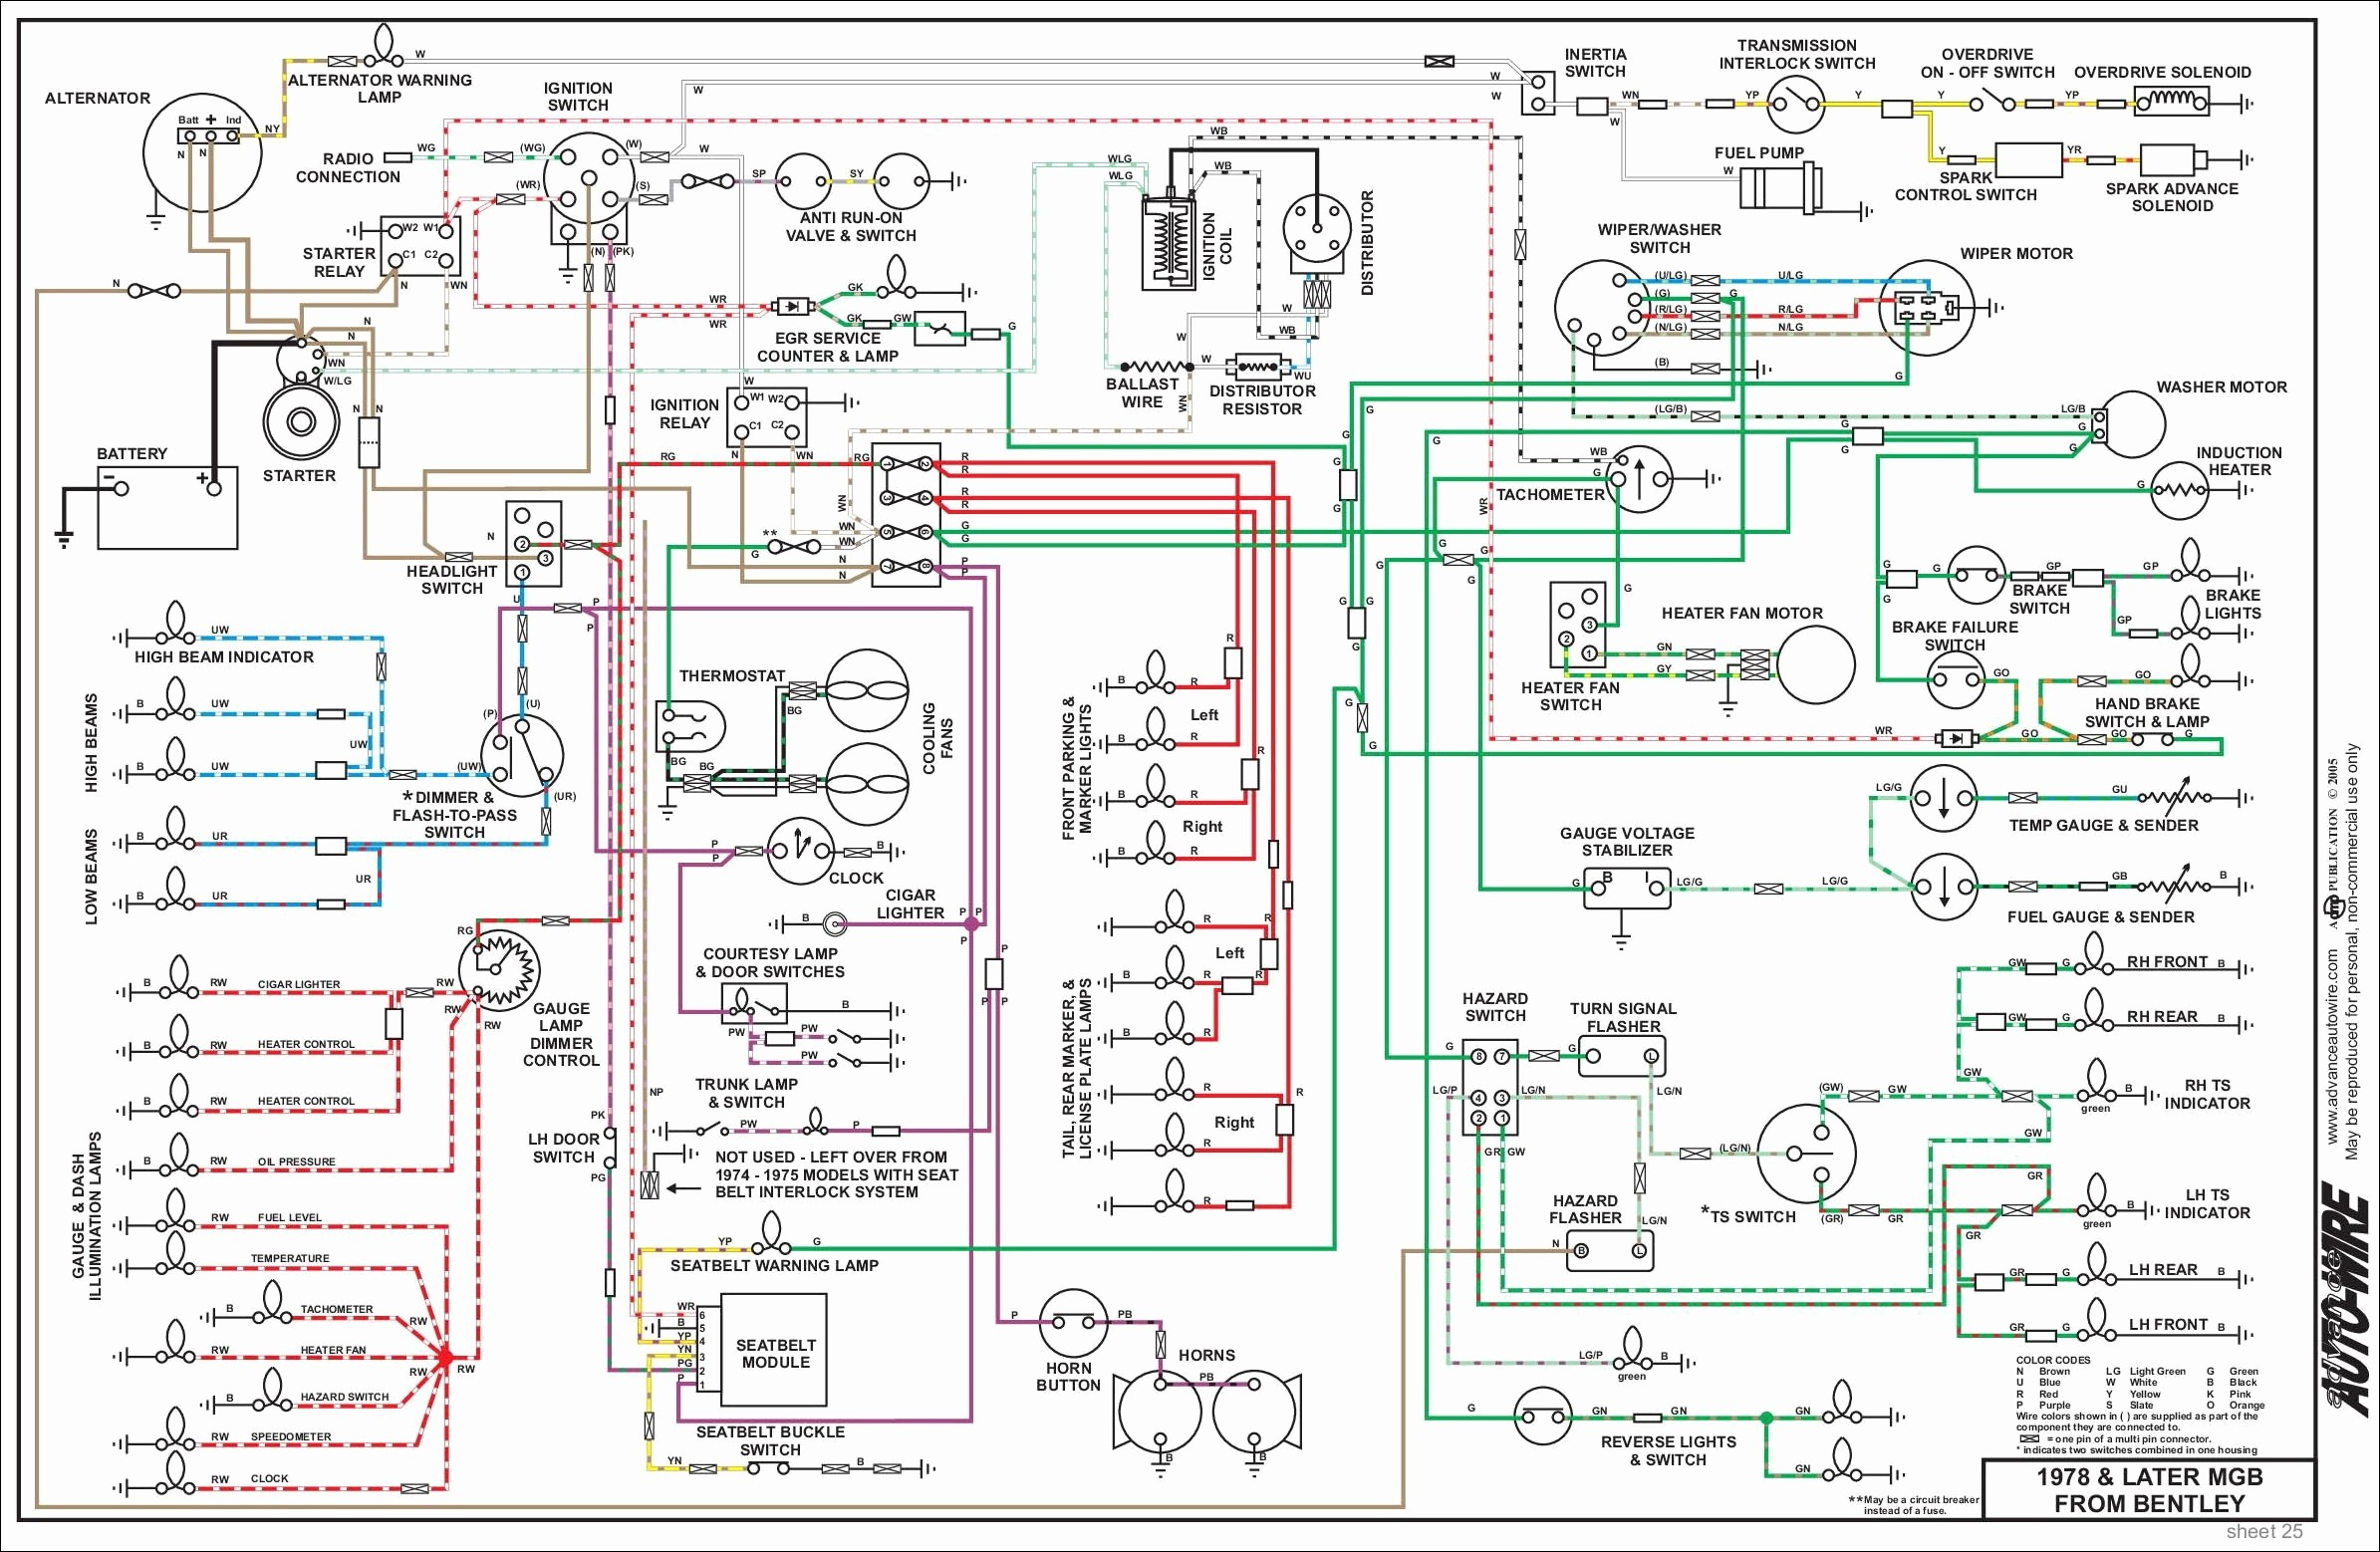 mgb wiring diagram wiring diagram image 12v coil wiring distributor wiring  diagram beautiful 1976 mgb wiring